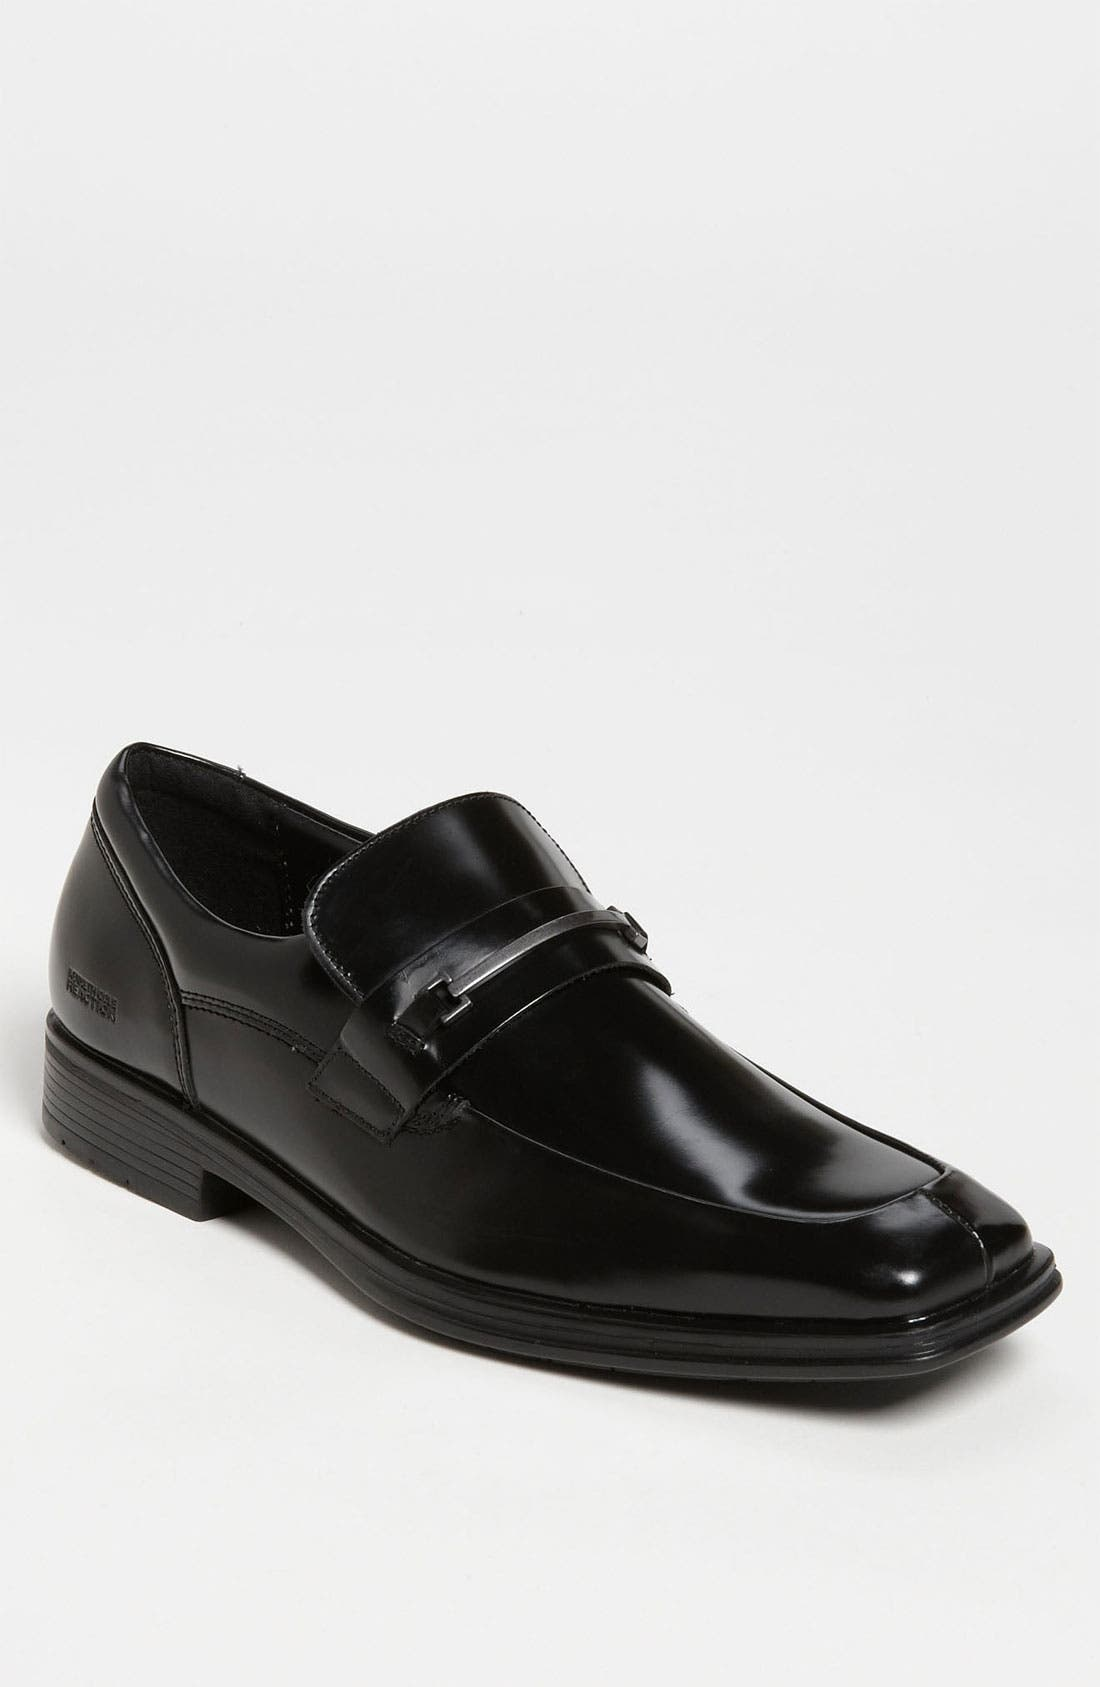 Main Image - Kenneth Cole Reaction 'Federal Mint' Bit Loafer (Online Only)